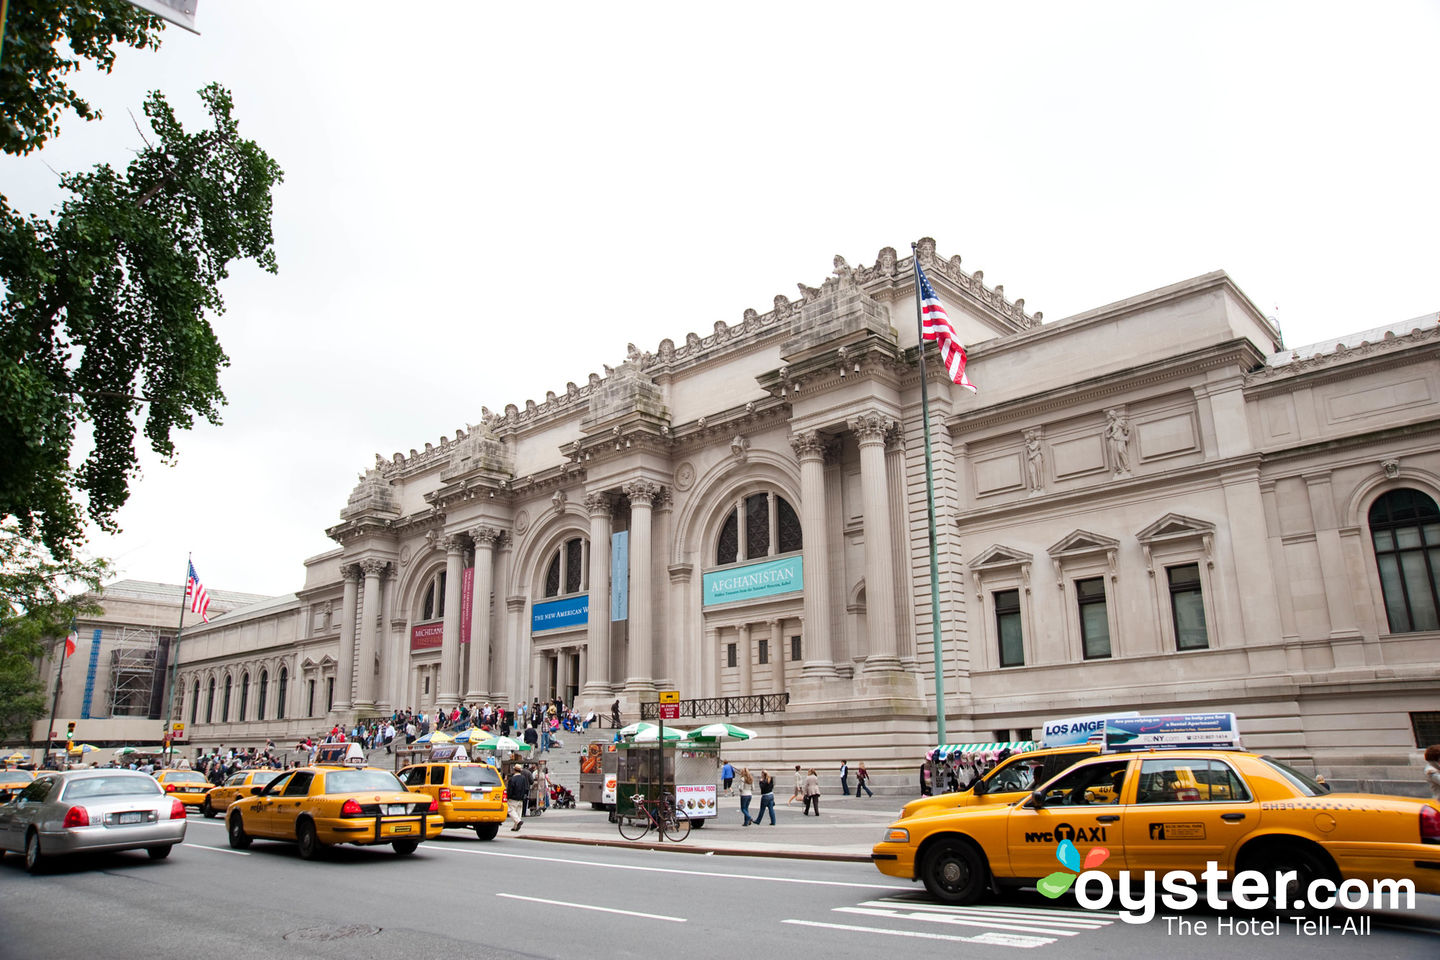 The Metropolitan Museum of Art/Oyster